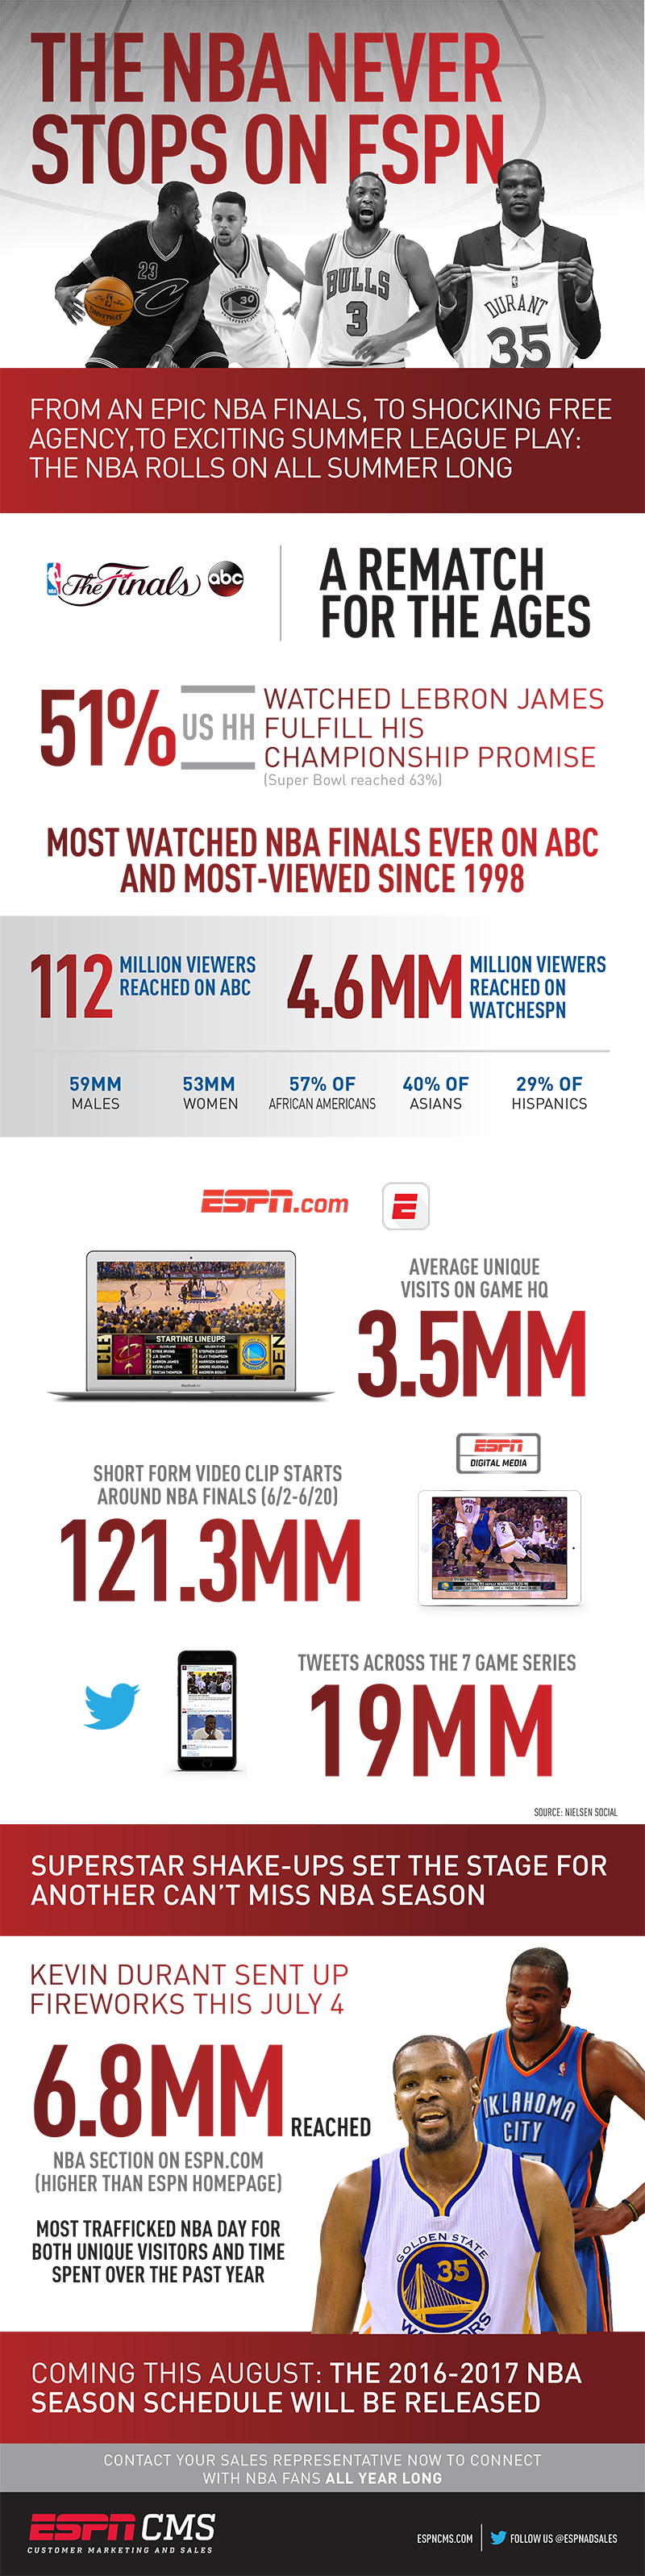 ESPNCMS Stream - NBA Never Stops On ESPN